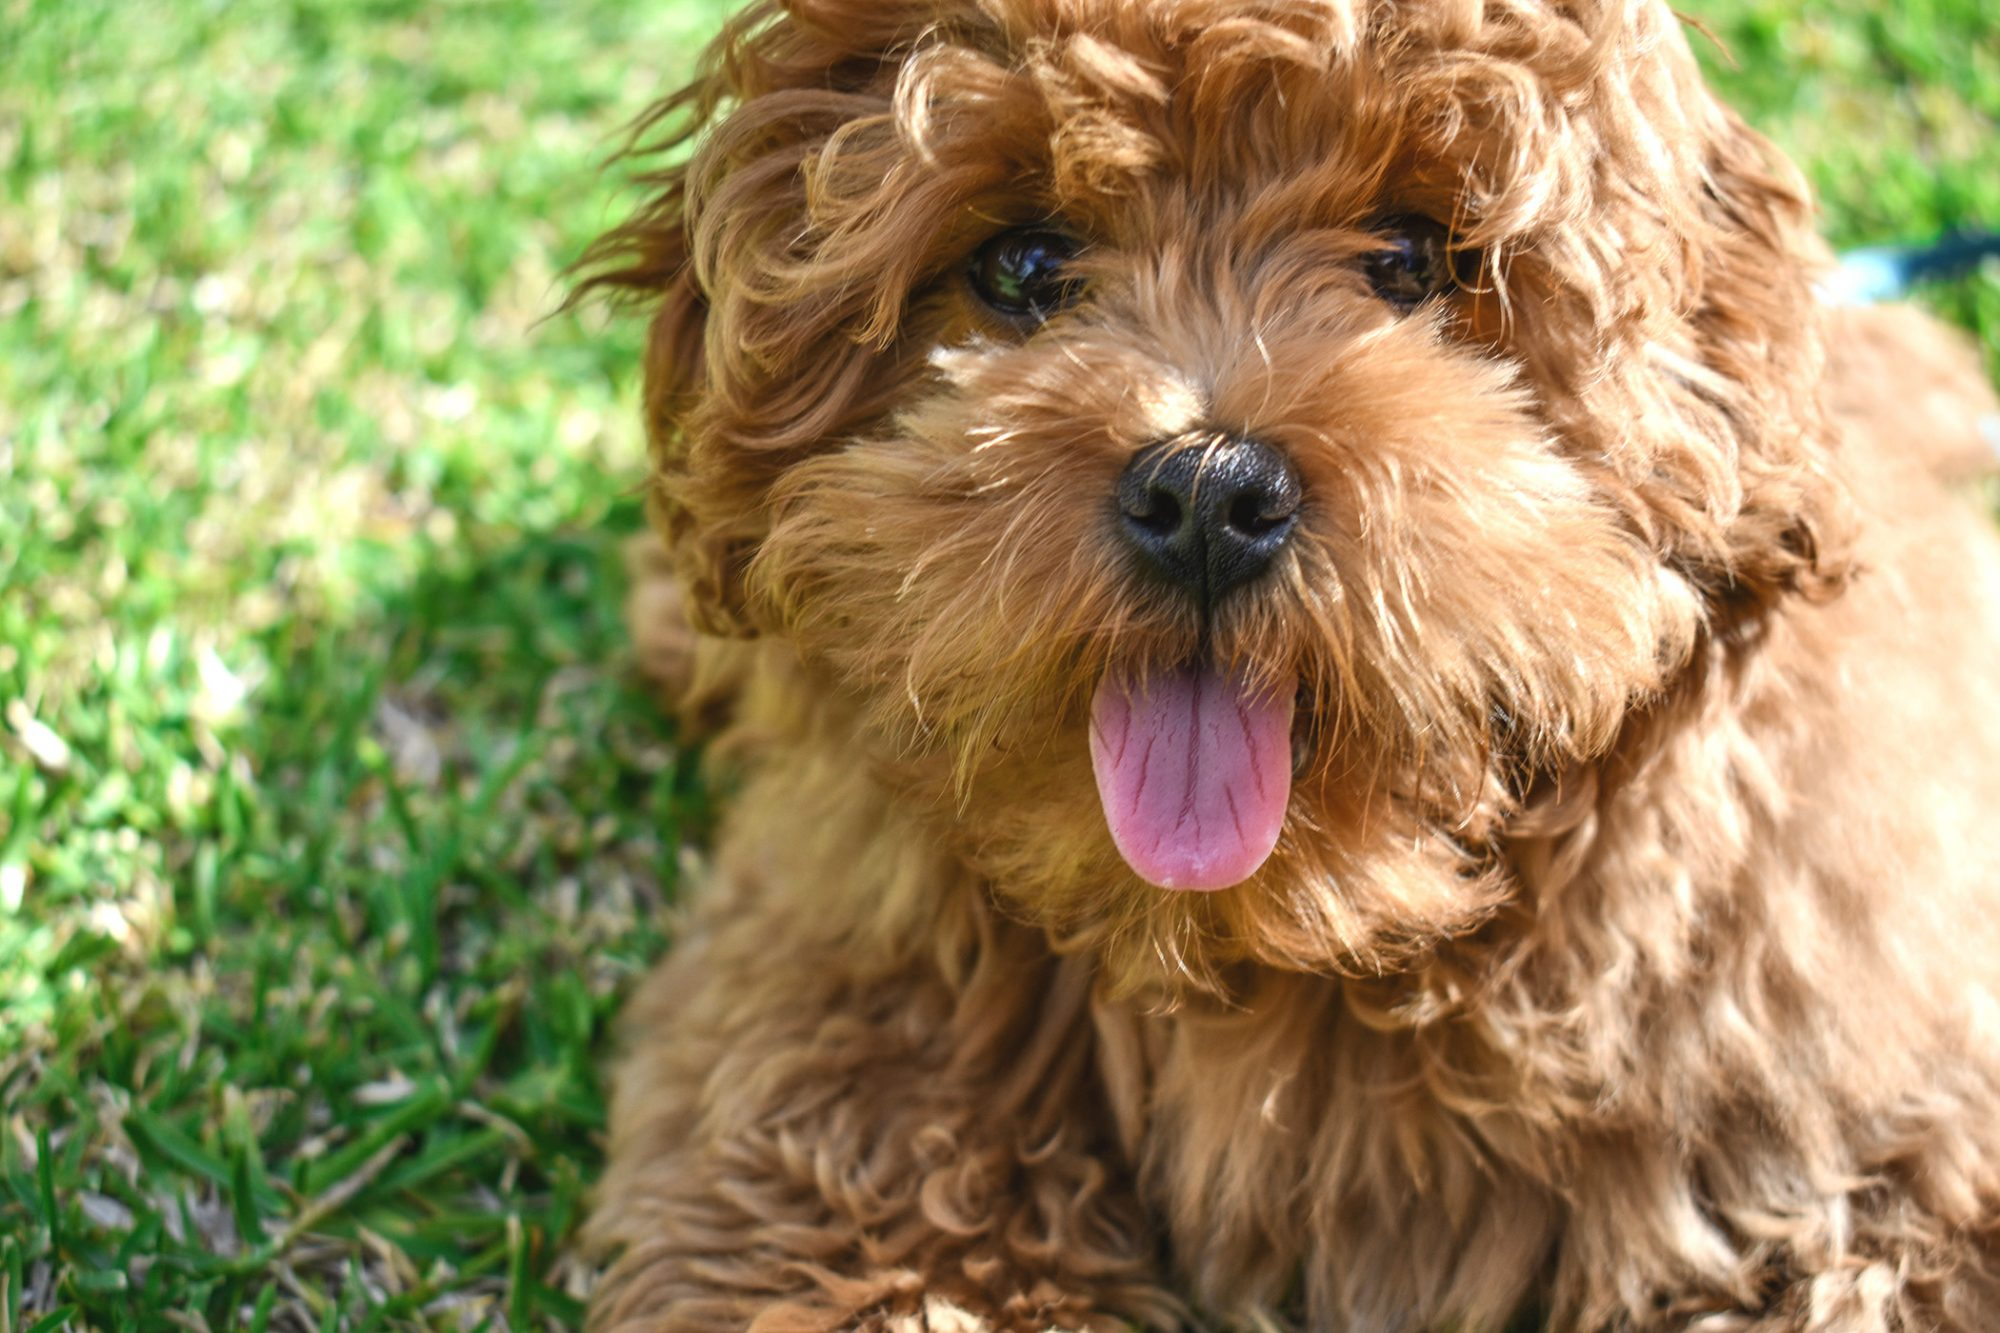 Caramel labradoodle sticks tongue out while laying in grass